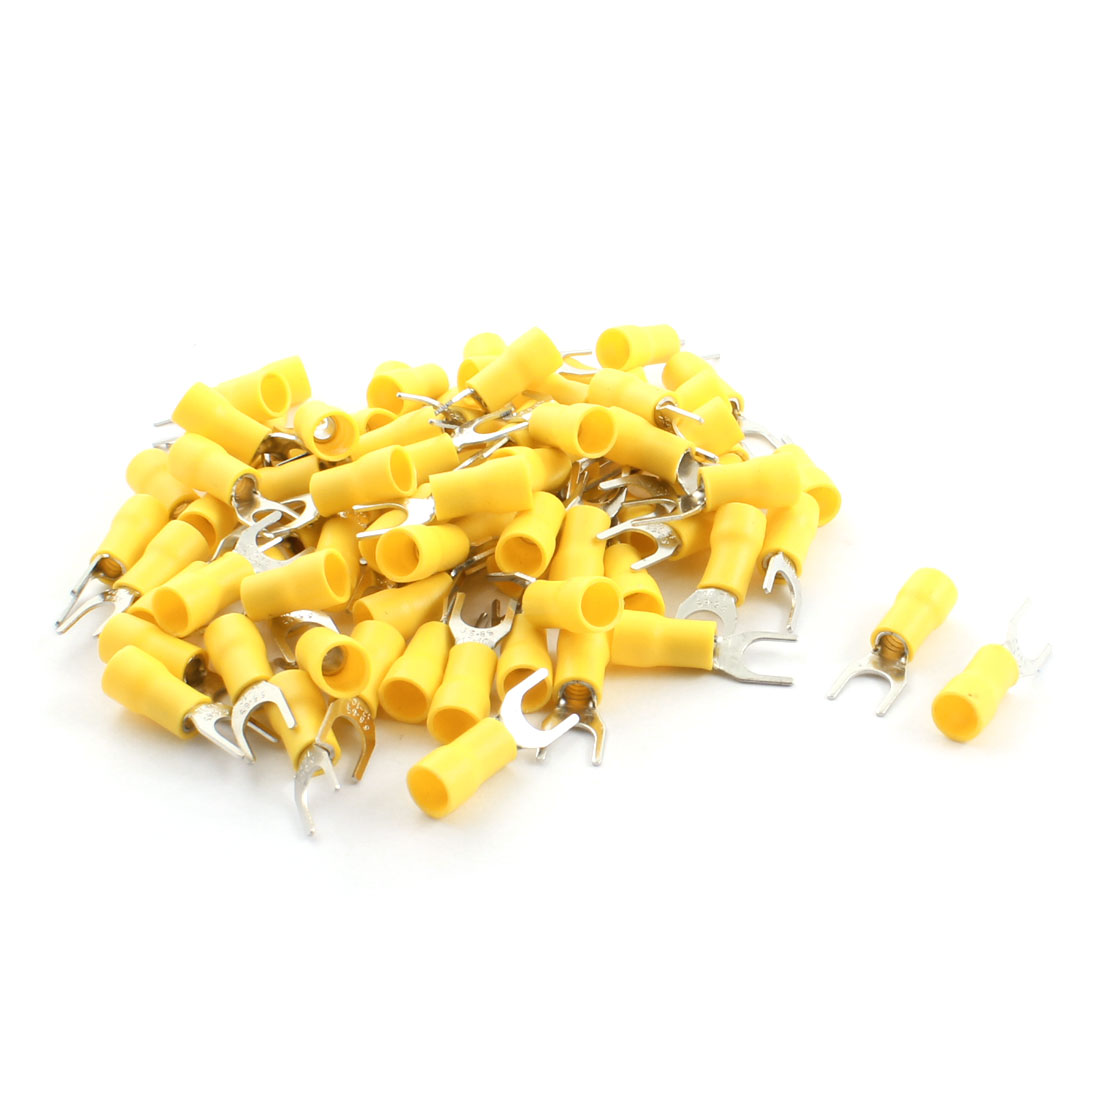 80Pcs SVS5.5-6 48A 12-10AWG Yellow Pre Insulated Electrical Furcate Terminal Cable Connector 6.4mm